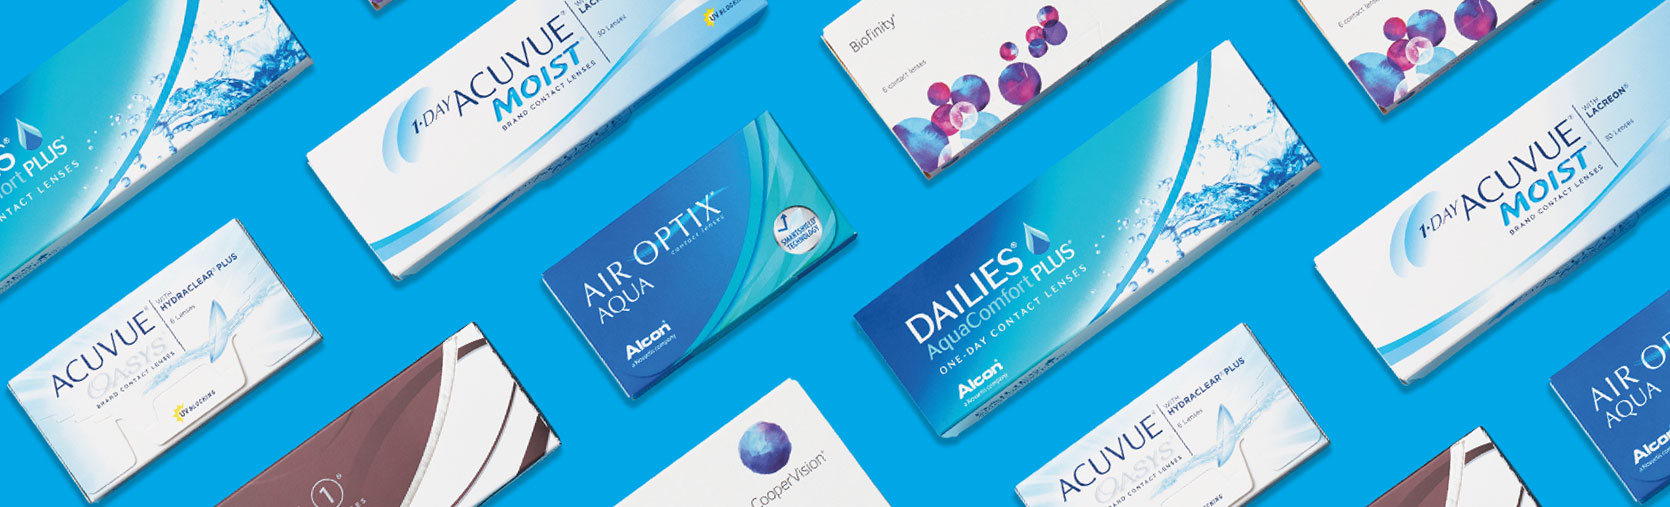 Contact lens boxes